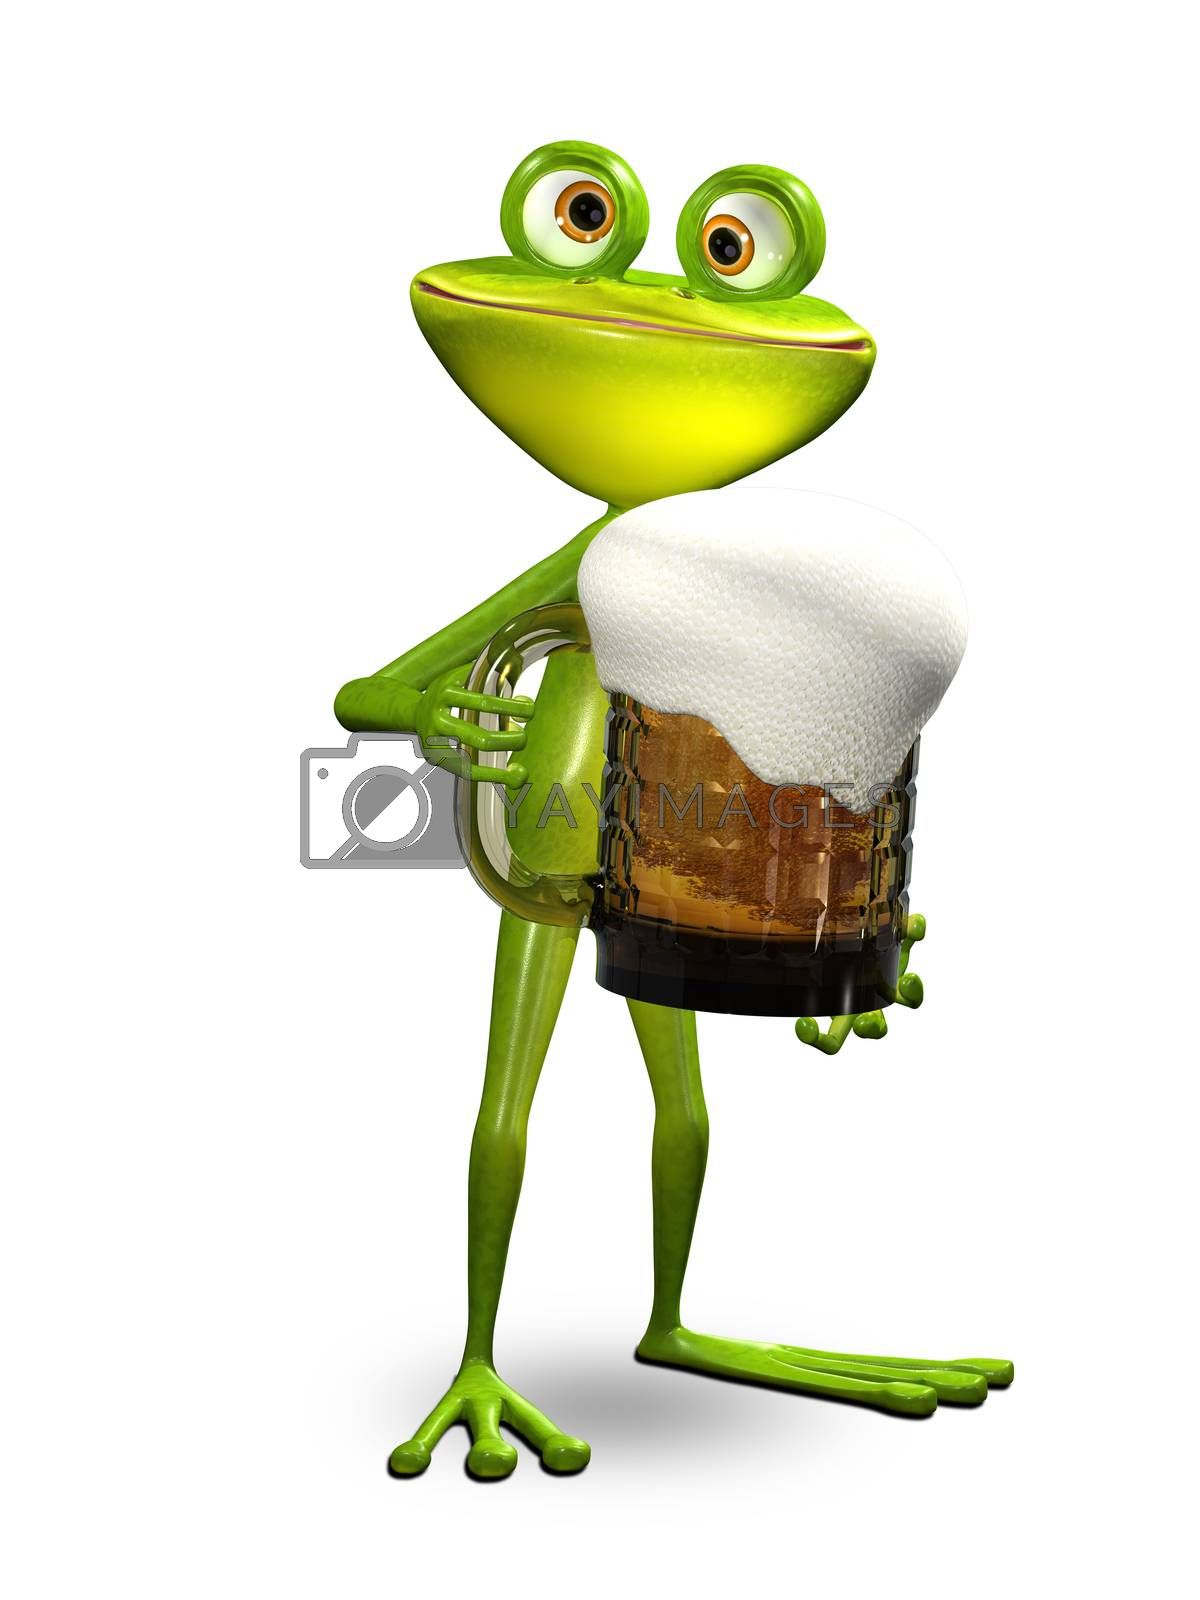 3D Illustration Frog with a Glass of Beer on a White Background